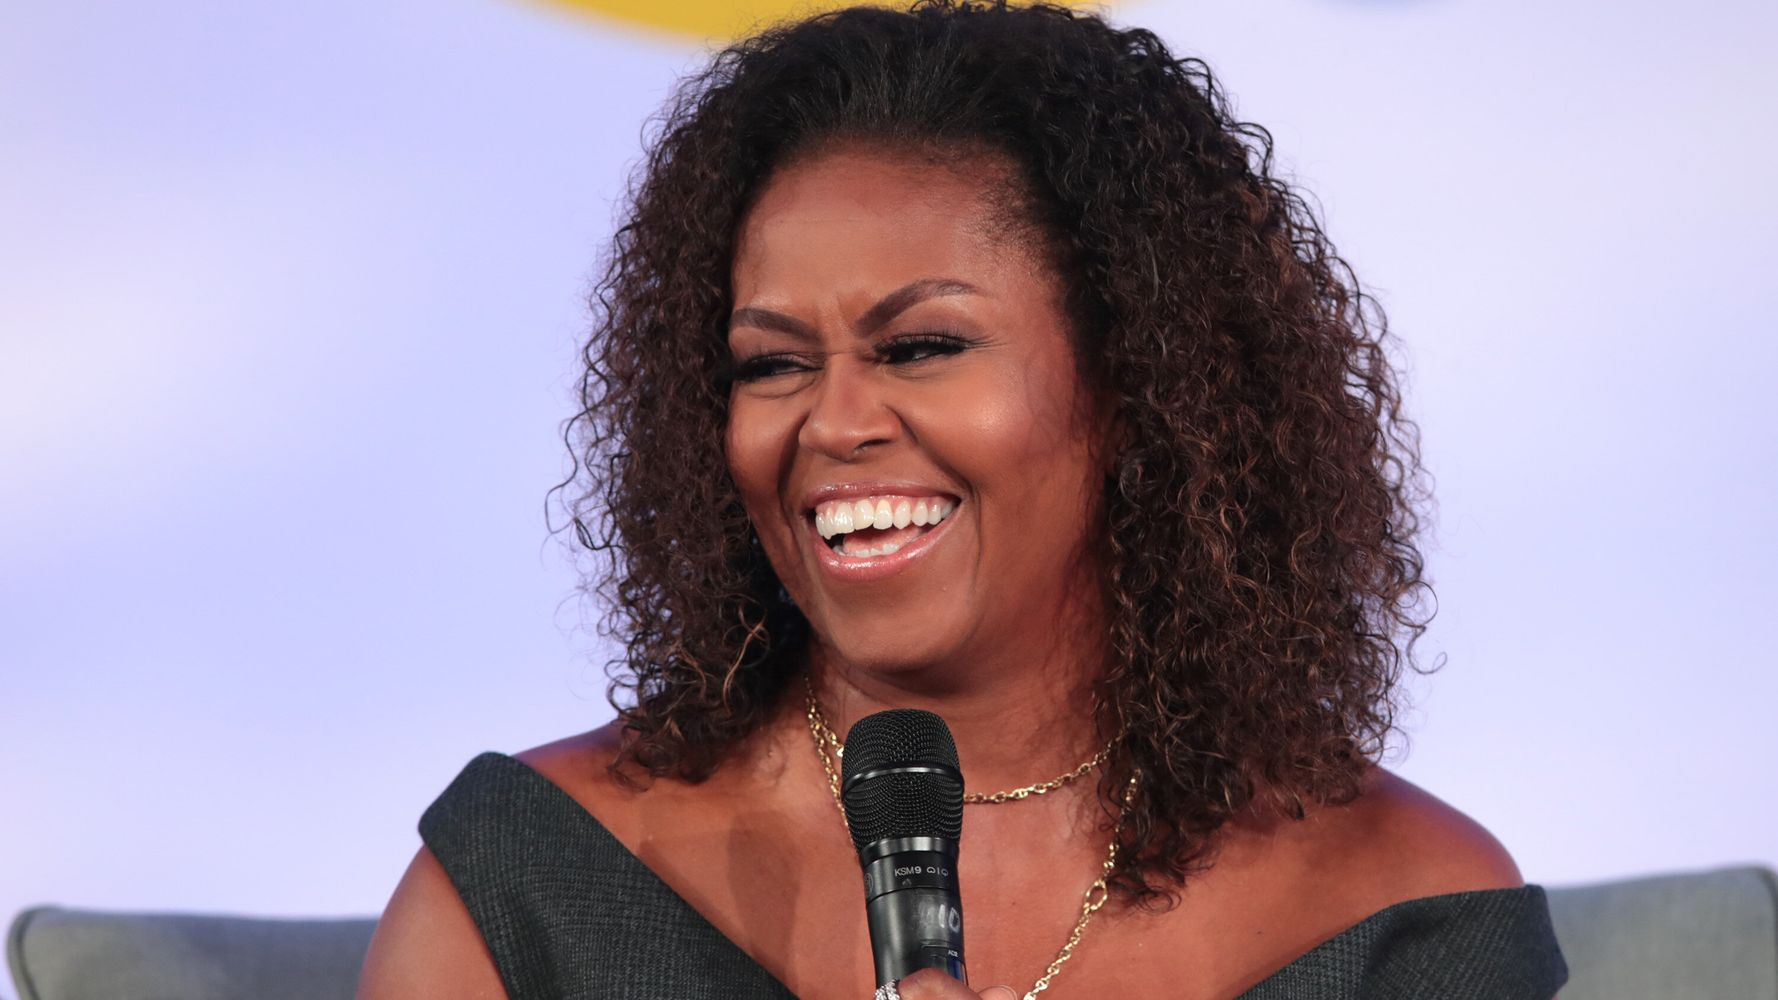 Westlake Legal Group 5e23222f24000052006c44eb Michelle Obama Talks About 'New Perspective' In Thoughtful Birthday Post